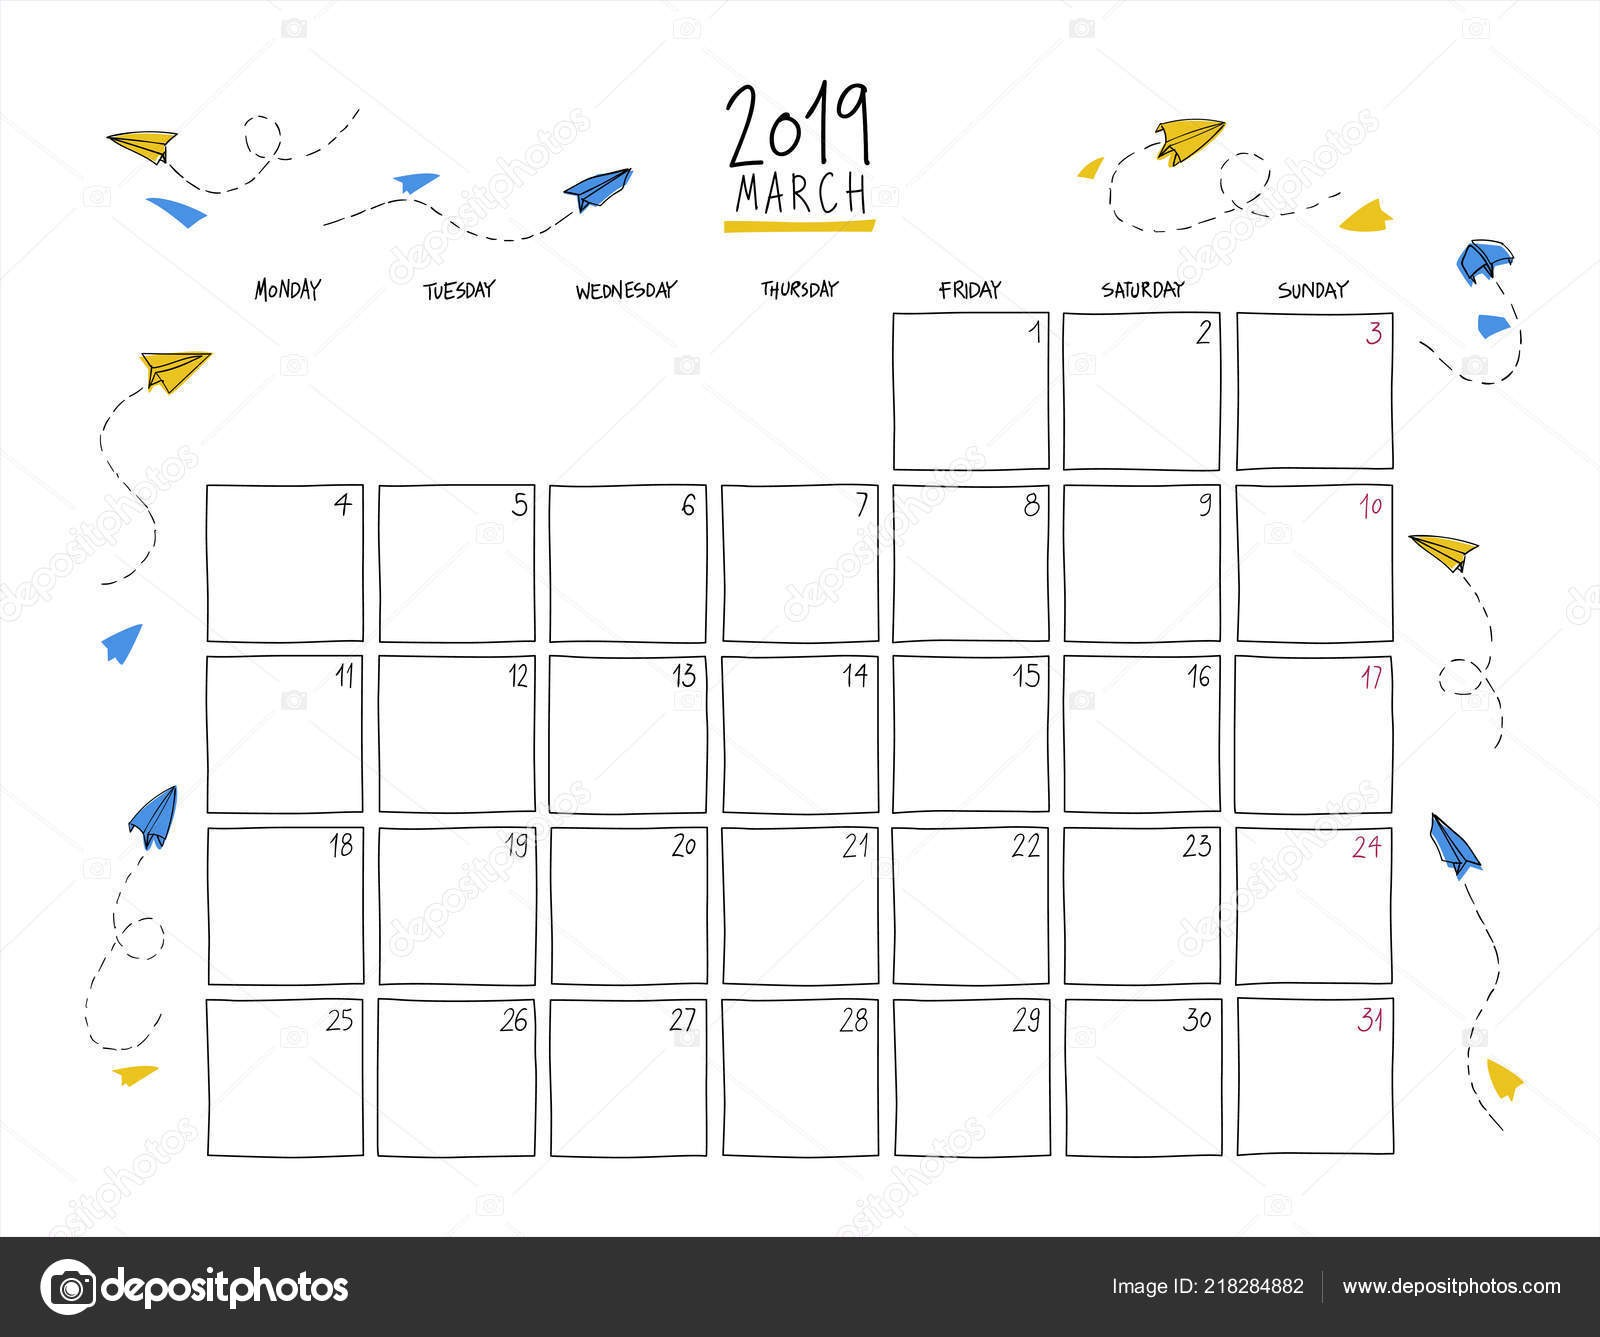 March Calendar 2019 Más Recientes March 2019 Wall Calendar Colorful Sketch Horizontal Template Letter Of March Calendar 2019 Más Populares March 2019 Calendar Pdf Word Excel